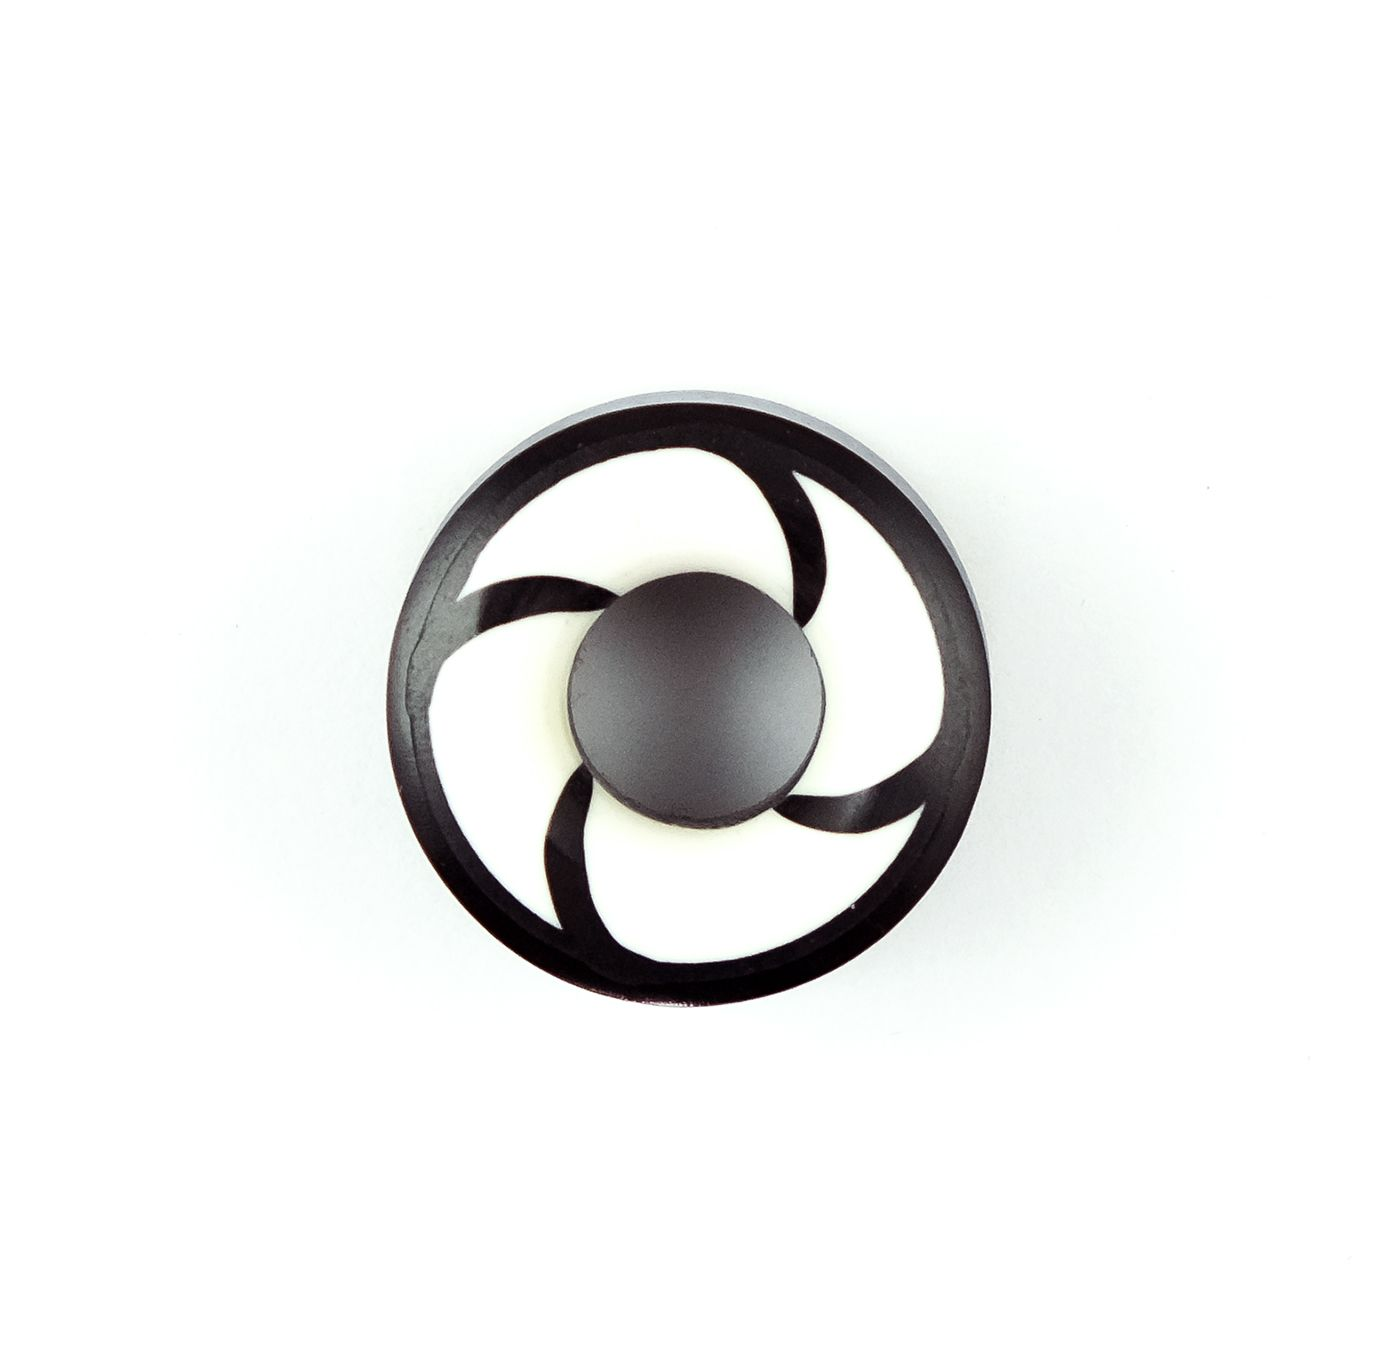 Tunel rohovina 22 mm - IS0052-0053